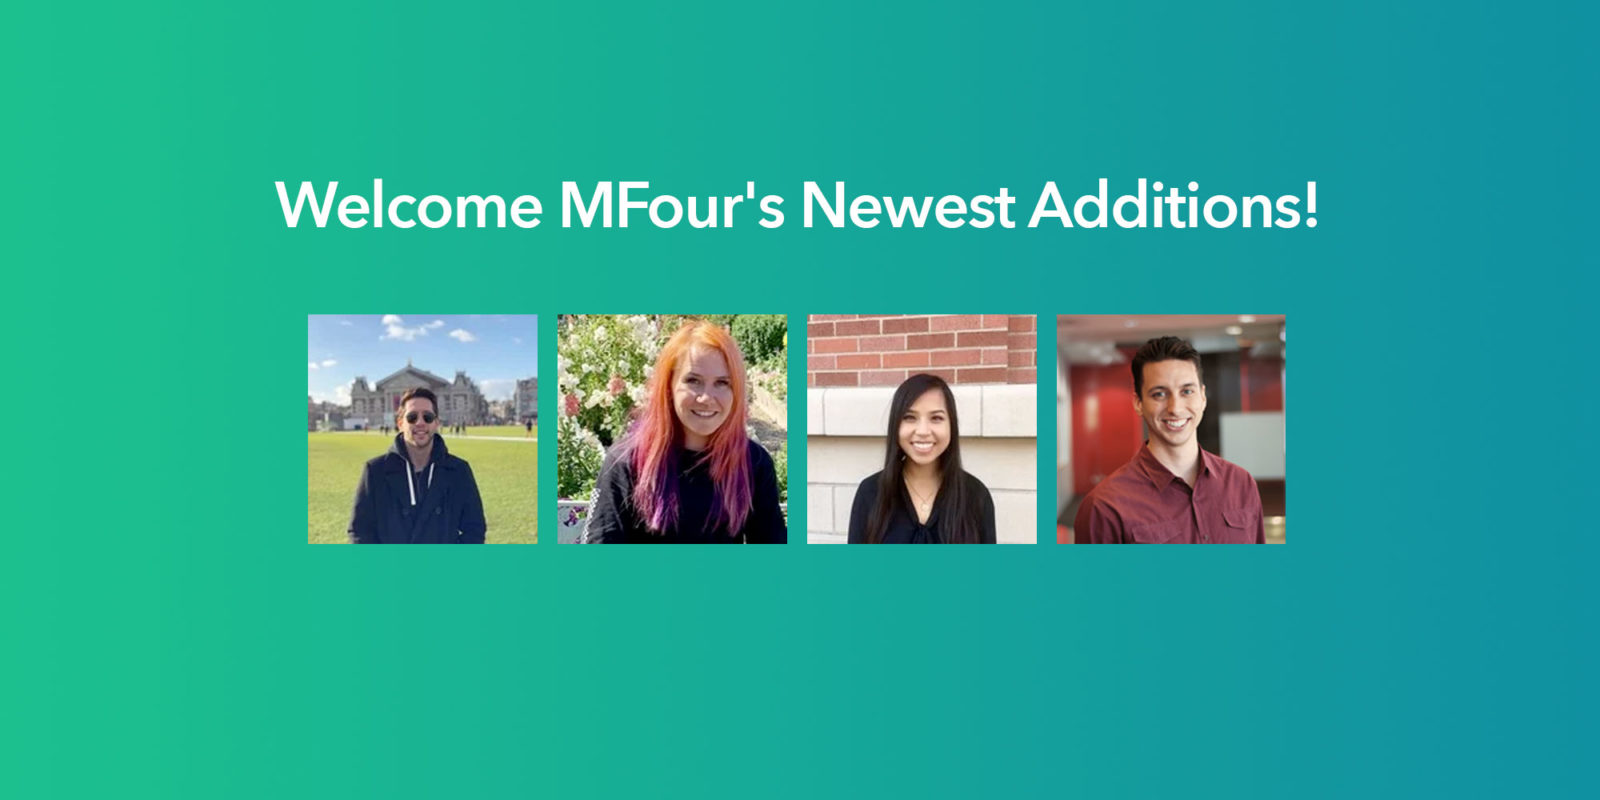 Welcome MFour's newest additions!